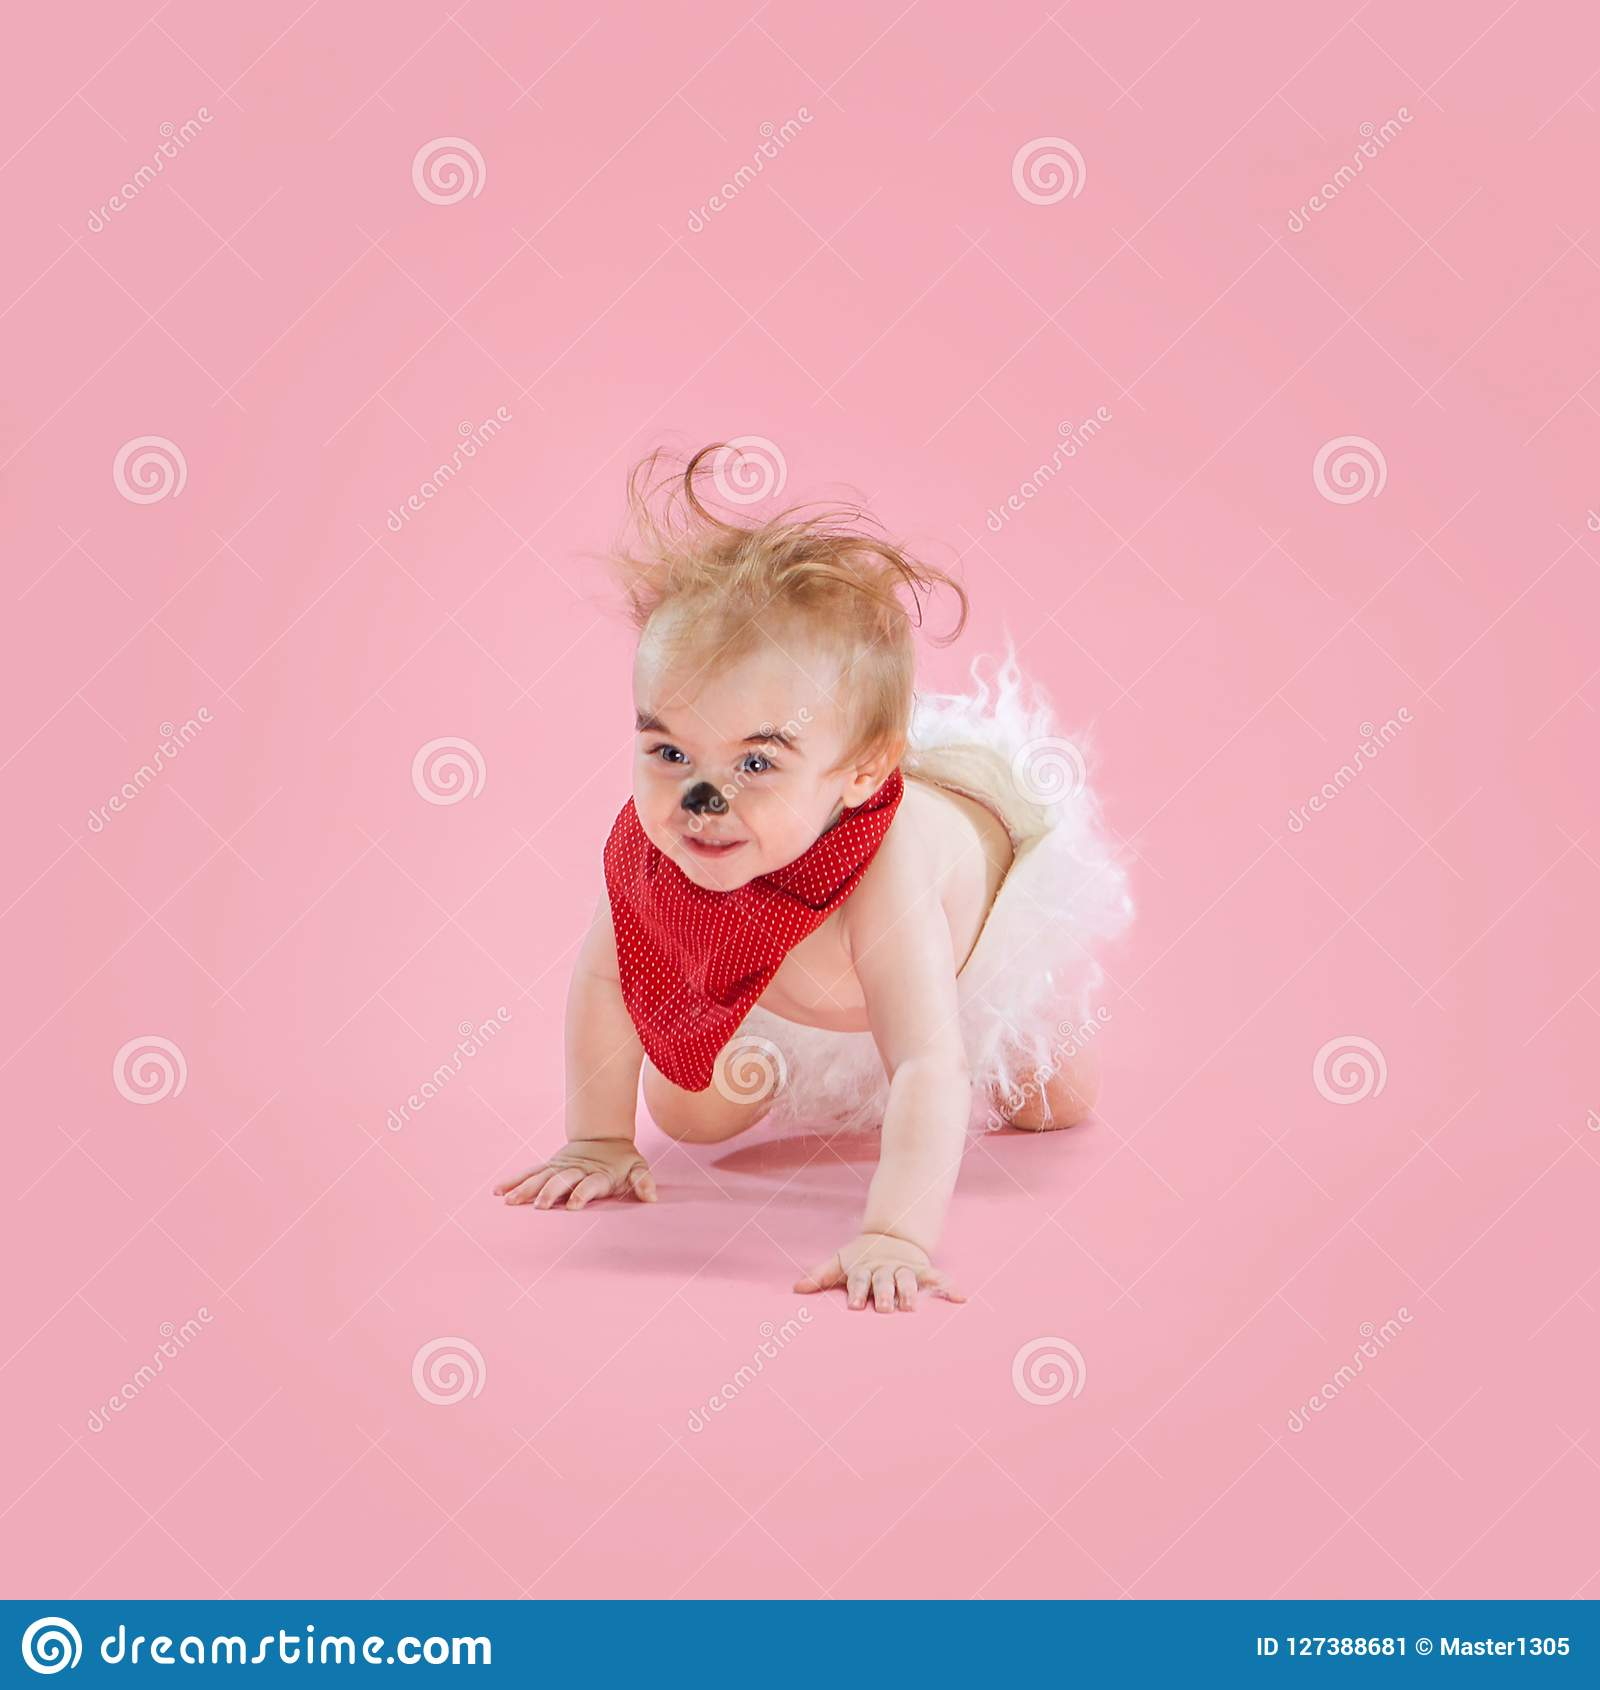 newborn baby girl wearing a halloween costume stock image - image of